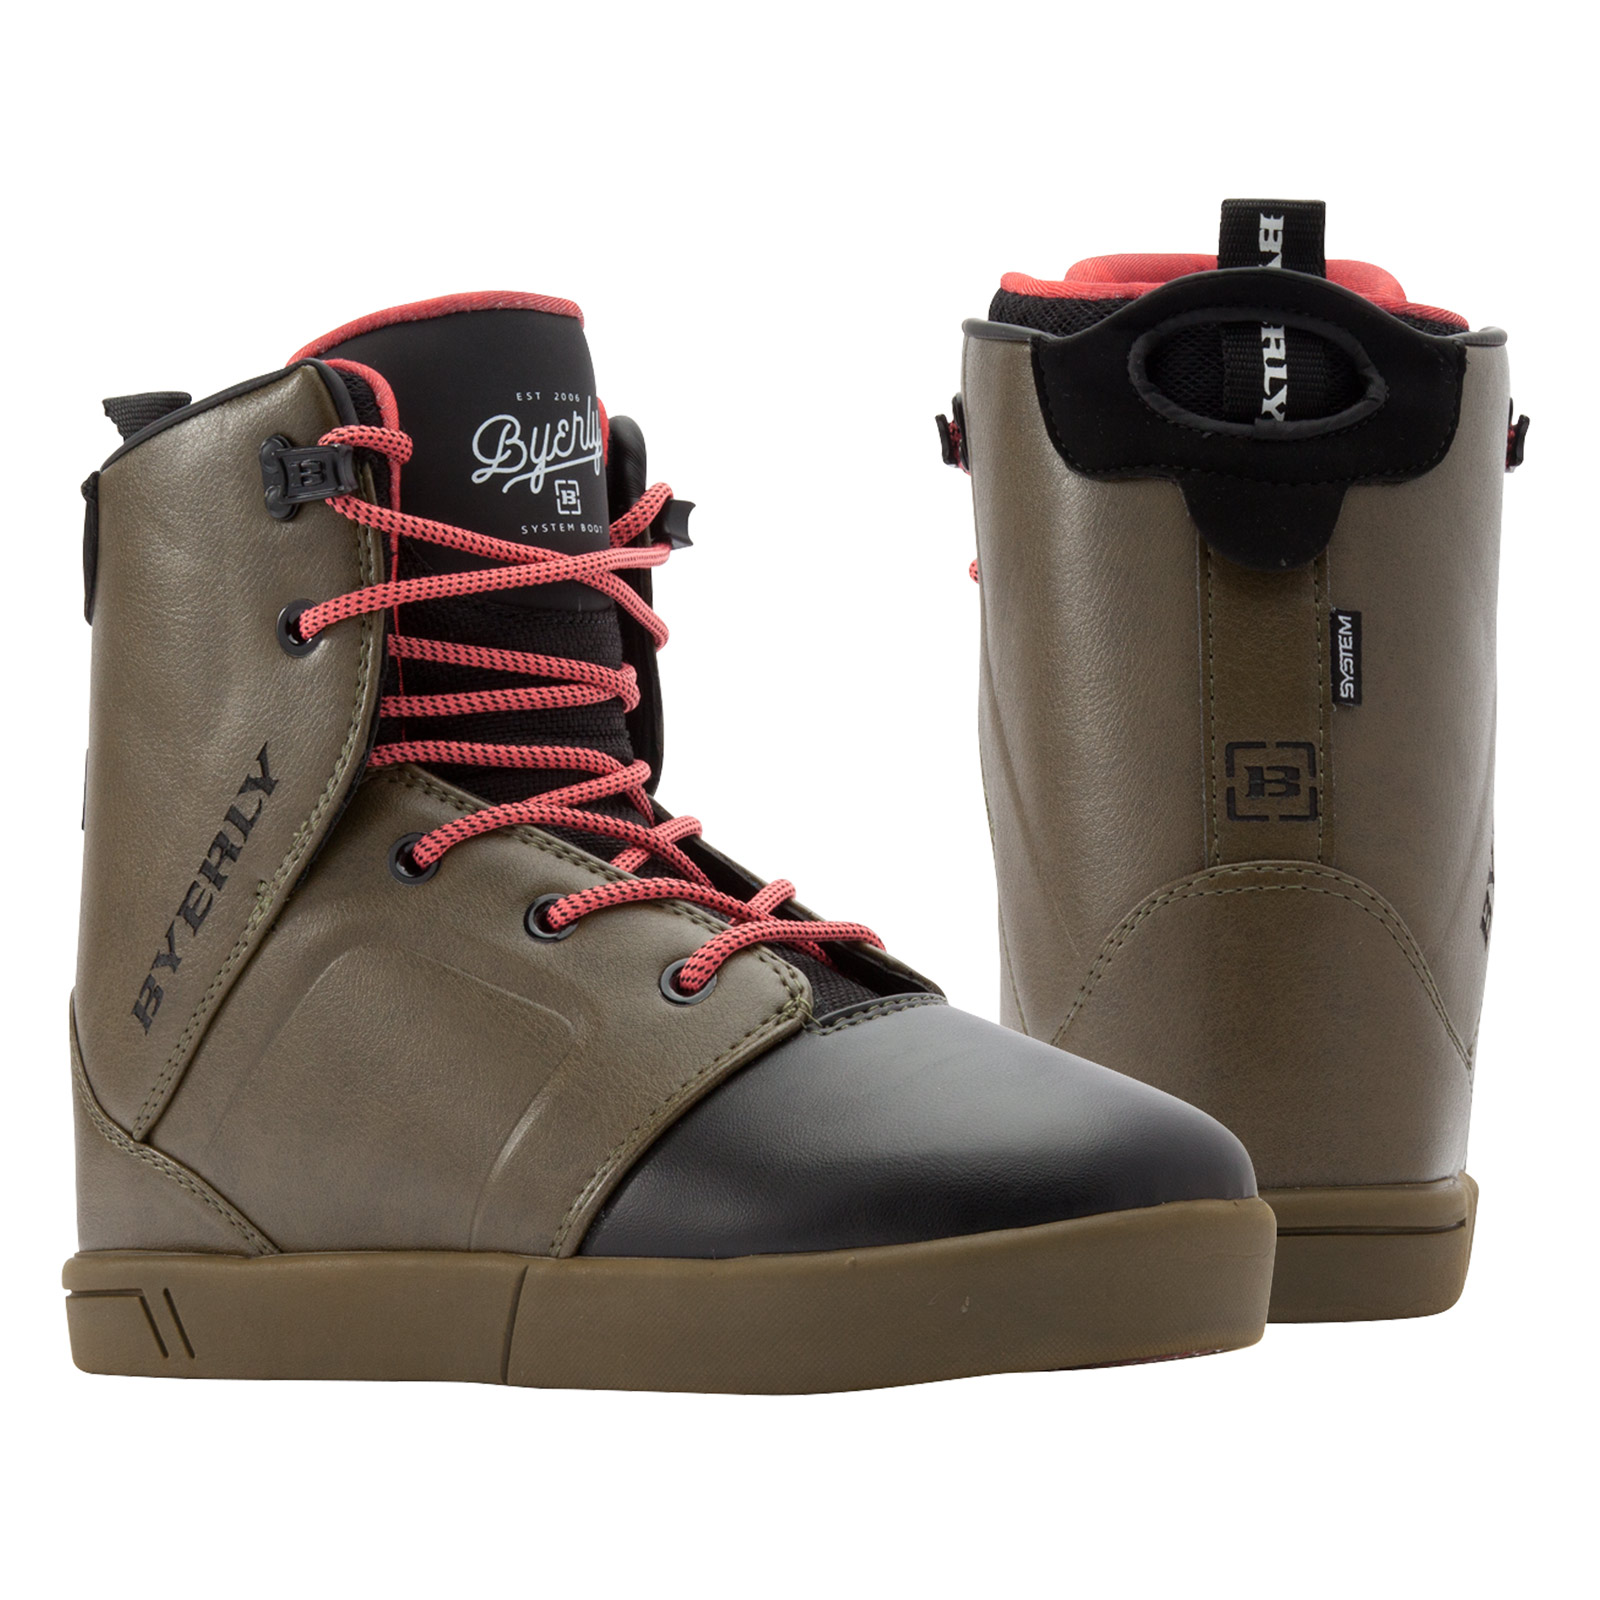 HAZE SYSTEM BOOT PAIR BYERLY 2017